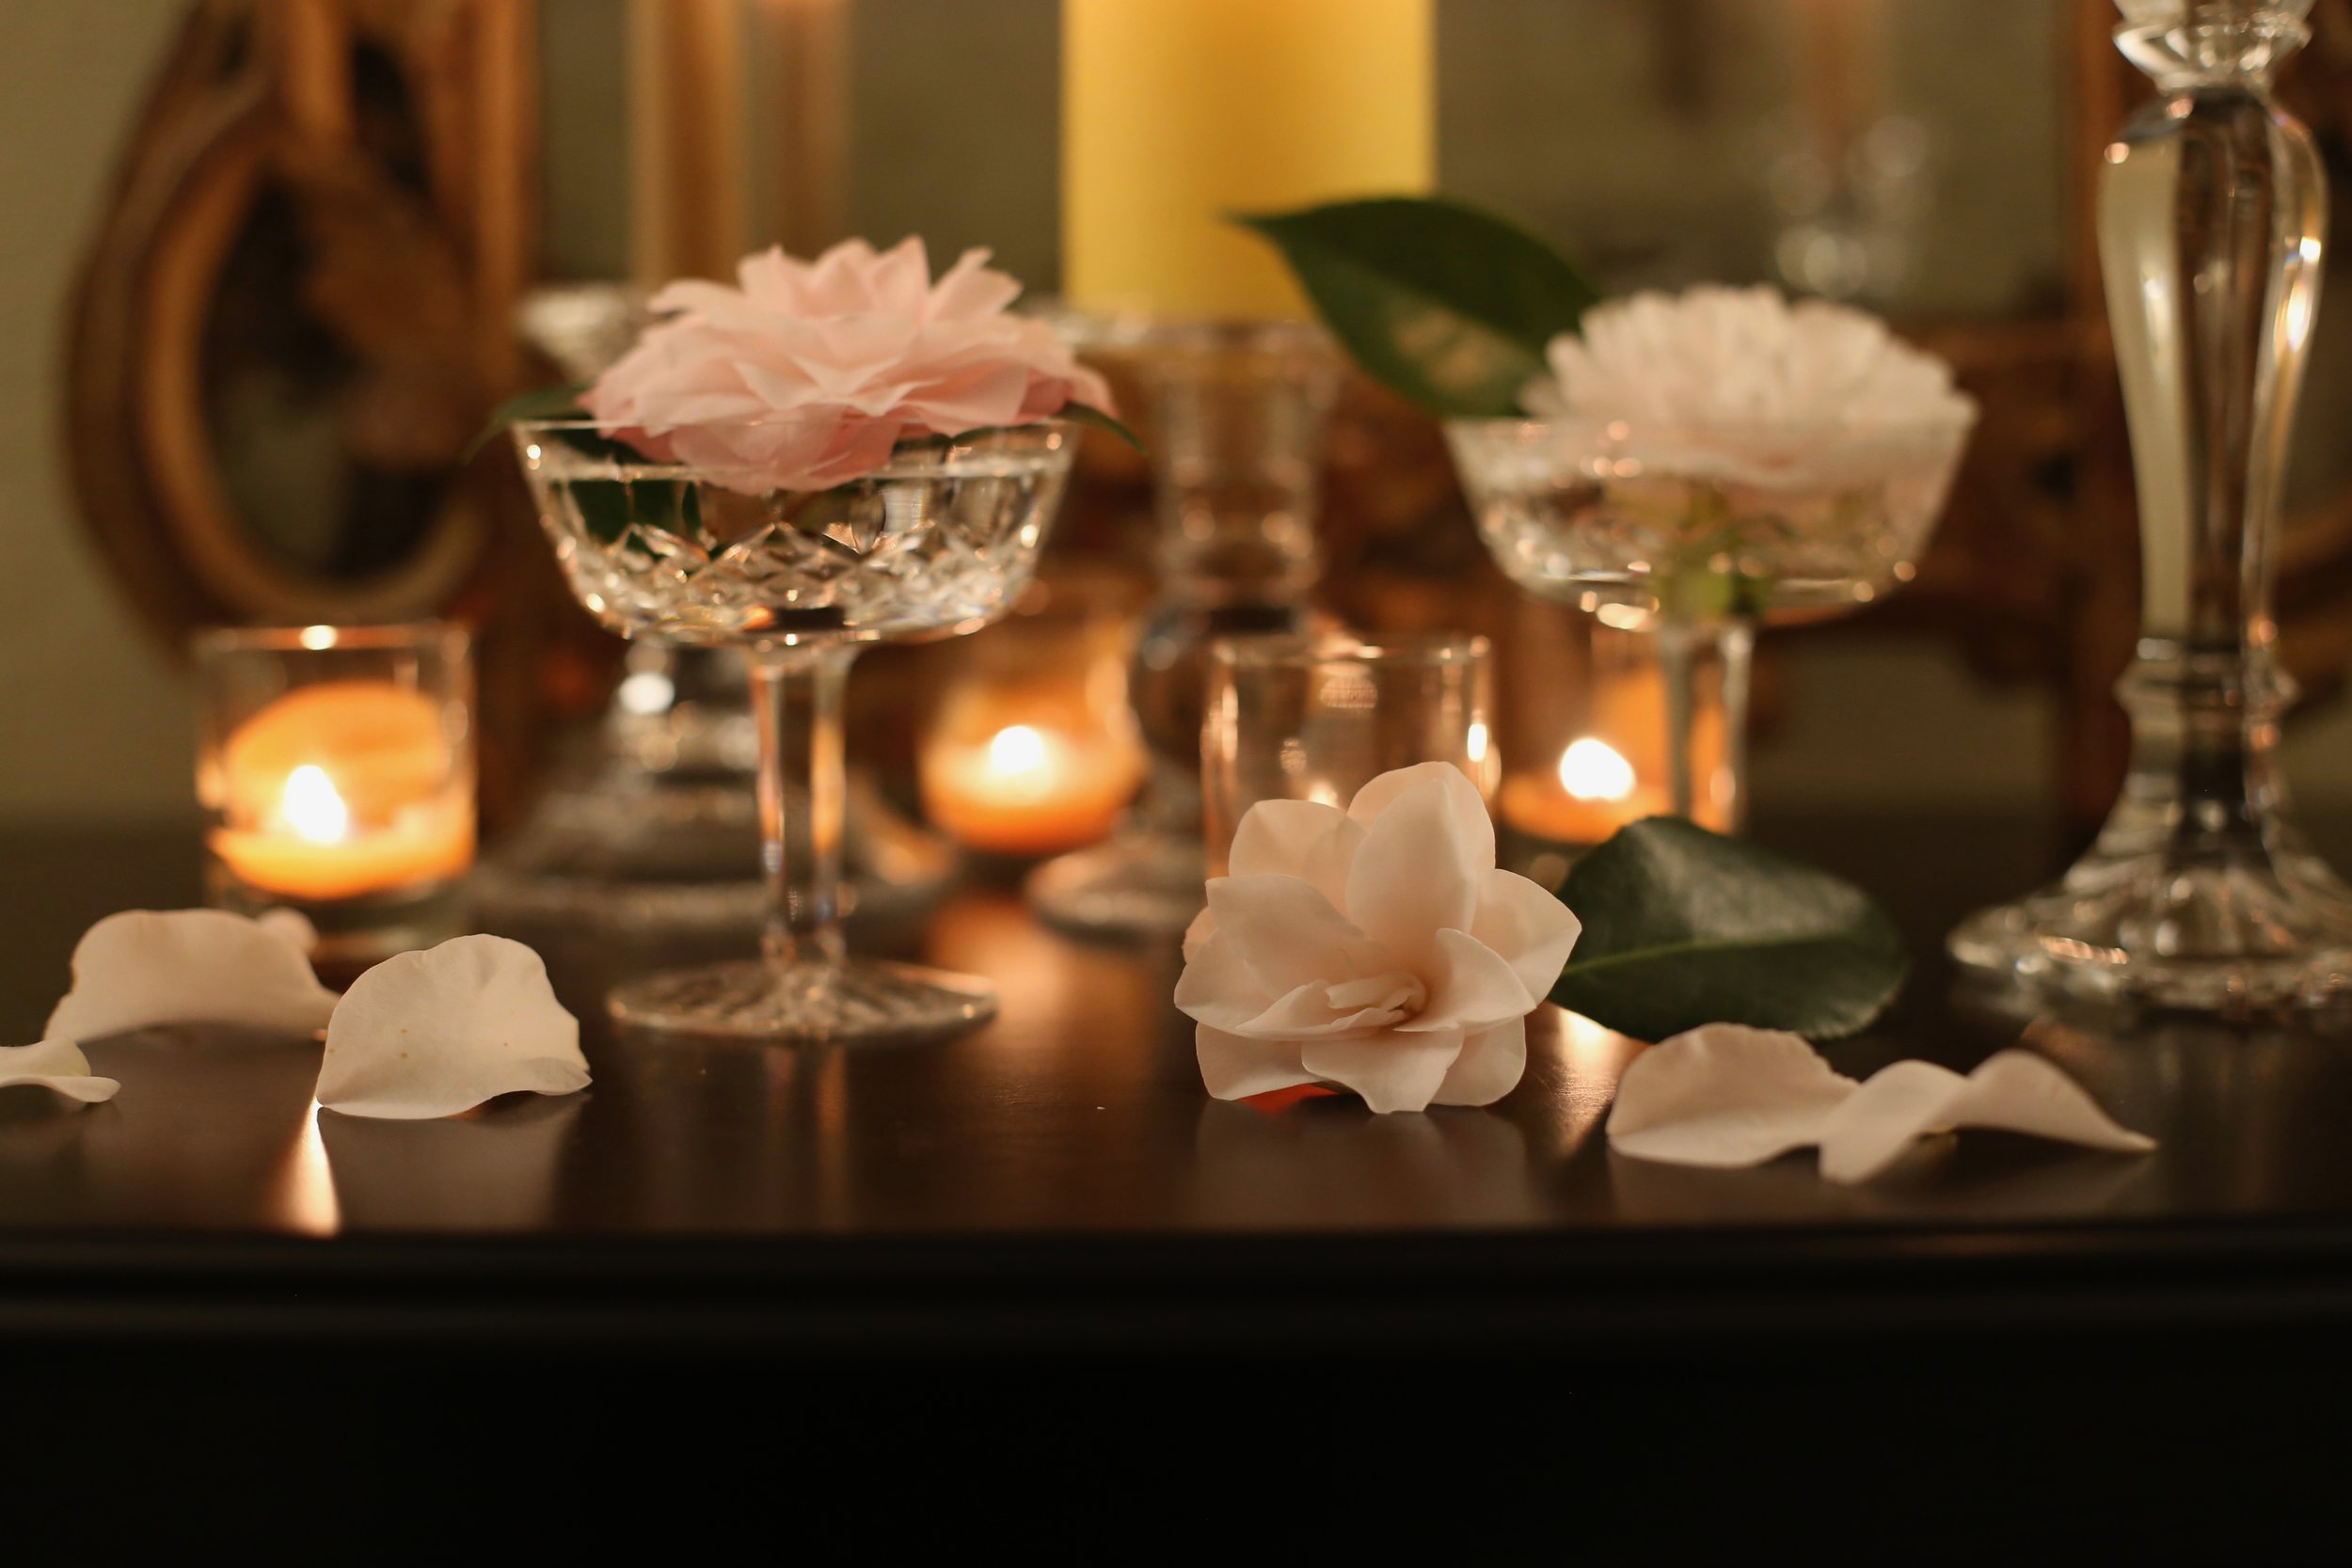 - These are camellias from my garden in Waterford glasses I found at a thrift store ($1.69 each YESSSSS) I gathered a mirror, candles, and votives from around the house and made a little tablescape on my dresser top.